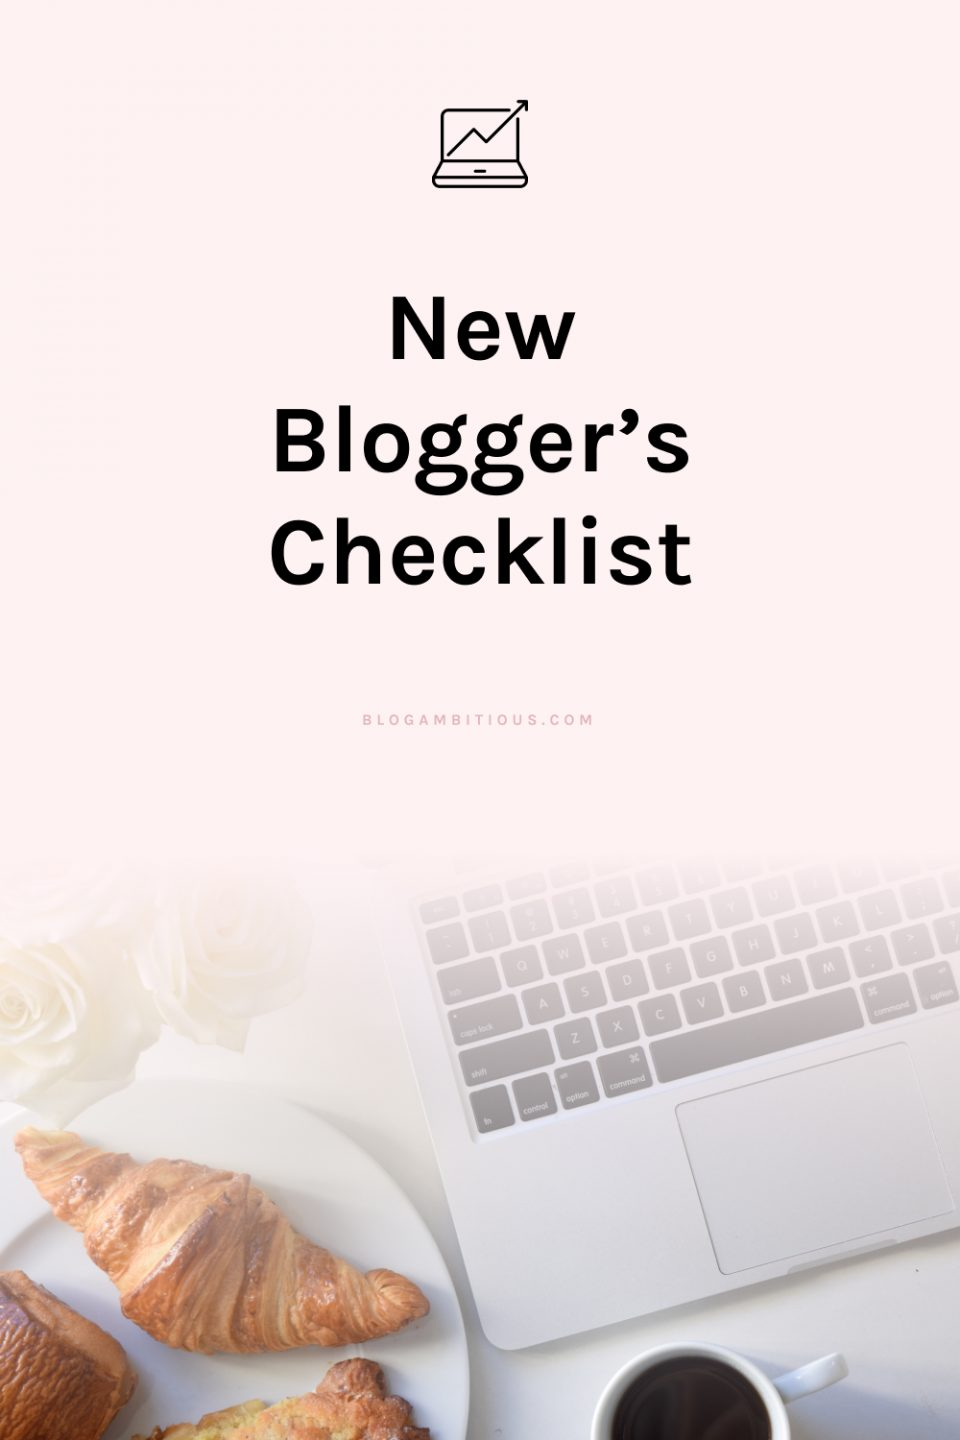 The Newbie Blogger's Checklist: 28 Tasks to Set Your Blog Up for Success